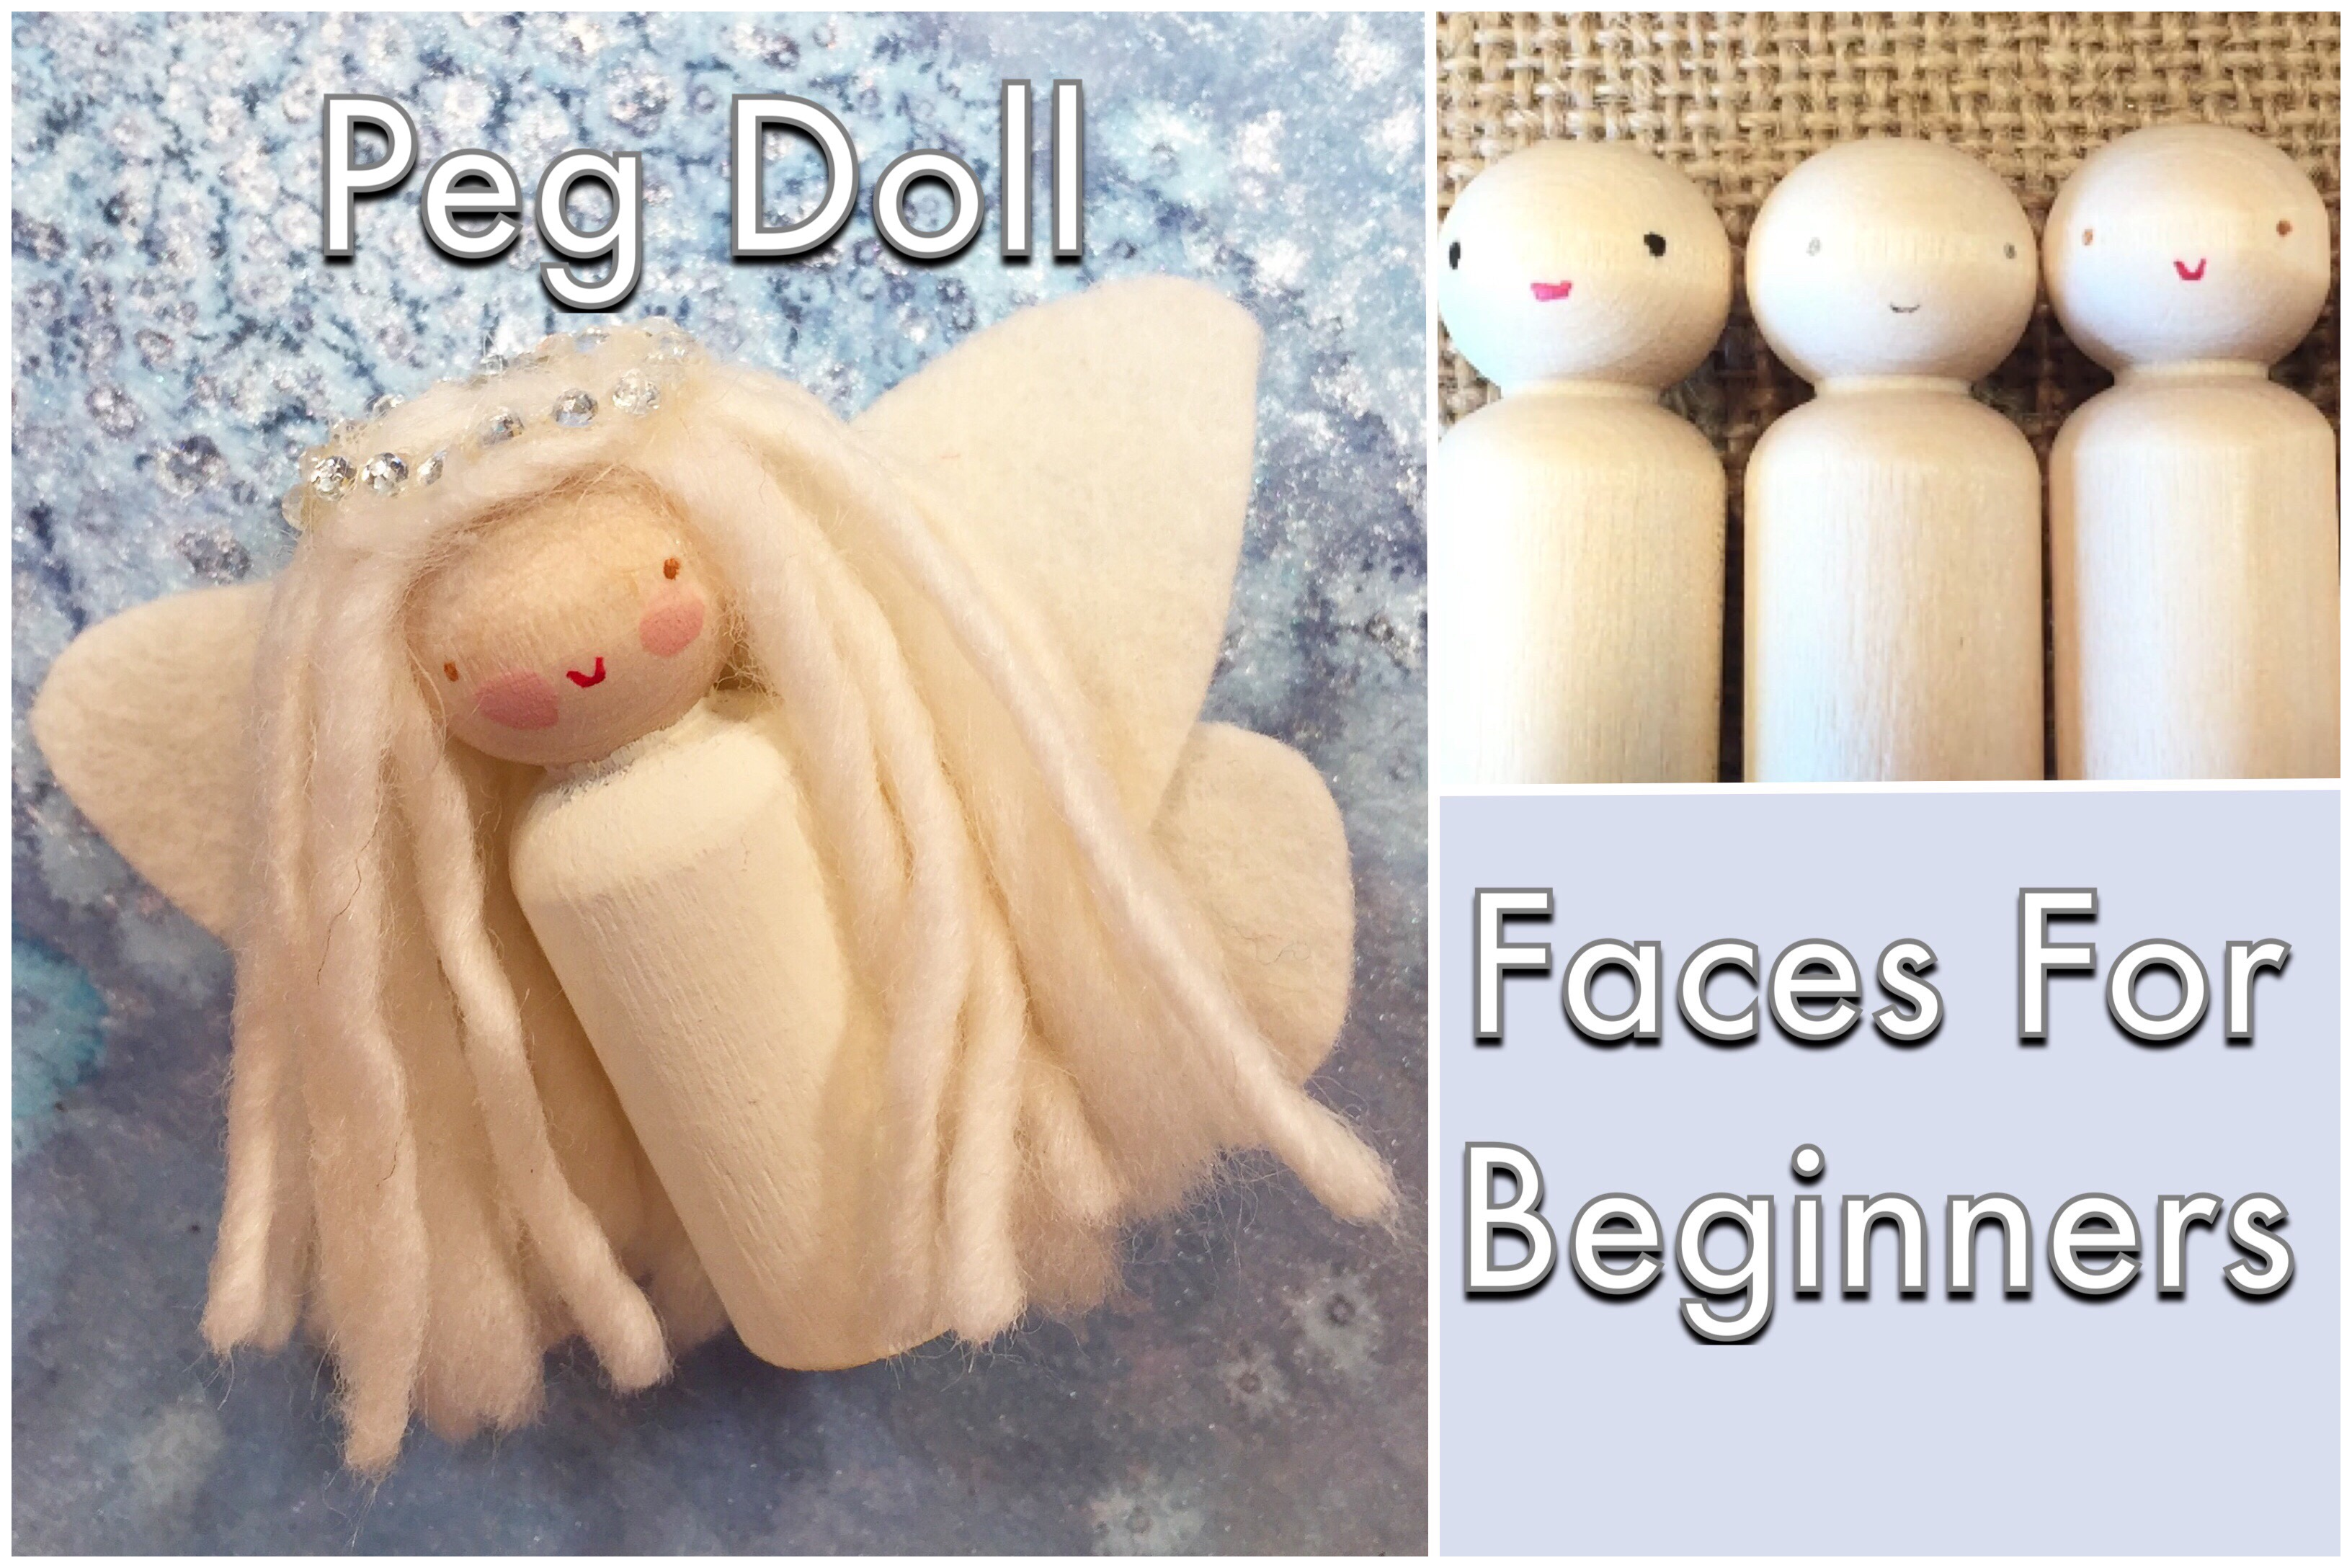 Peg Doll Faces For Beginners